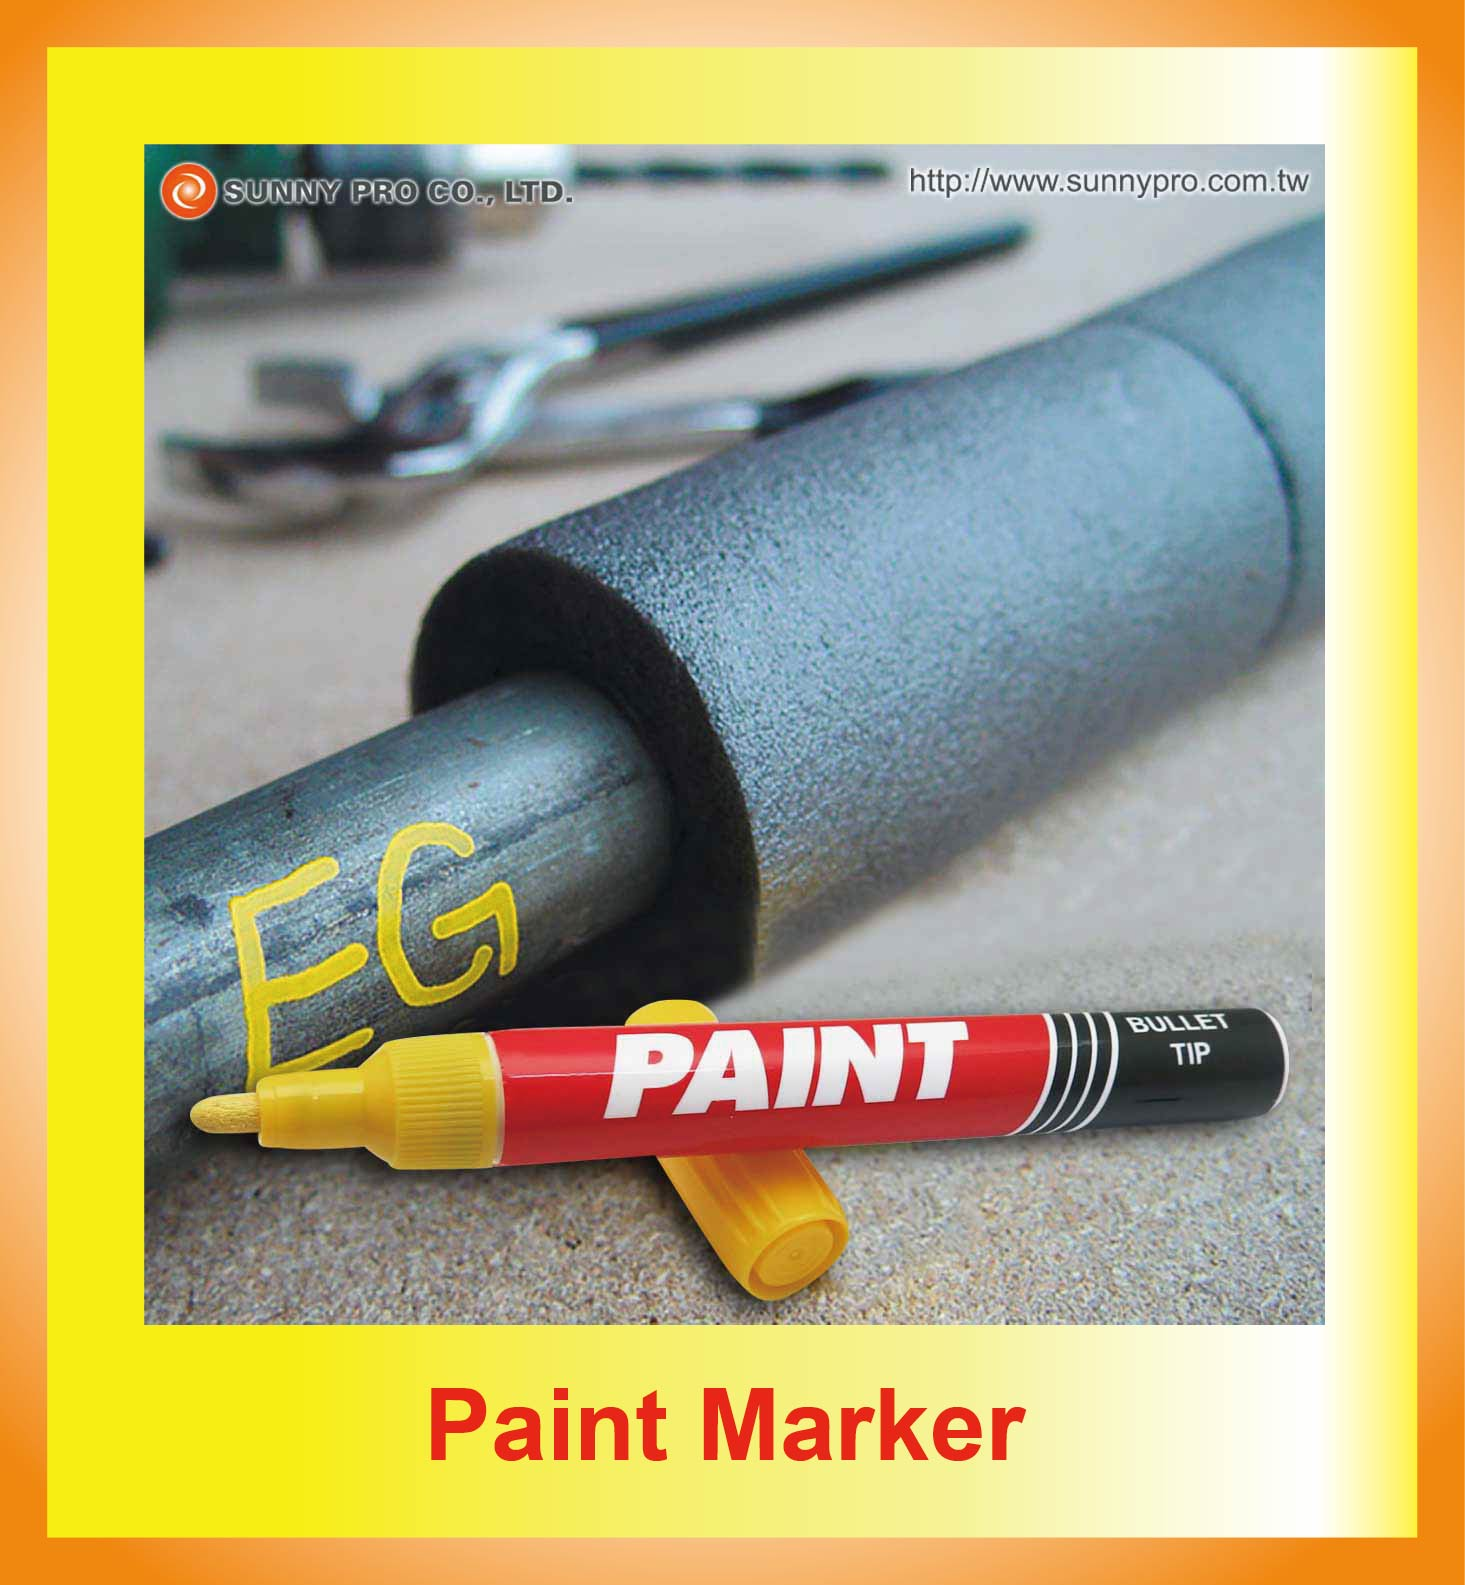 Paint Marker -  Sunny Pro Co., Ltd – Marker Pen